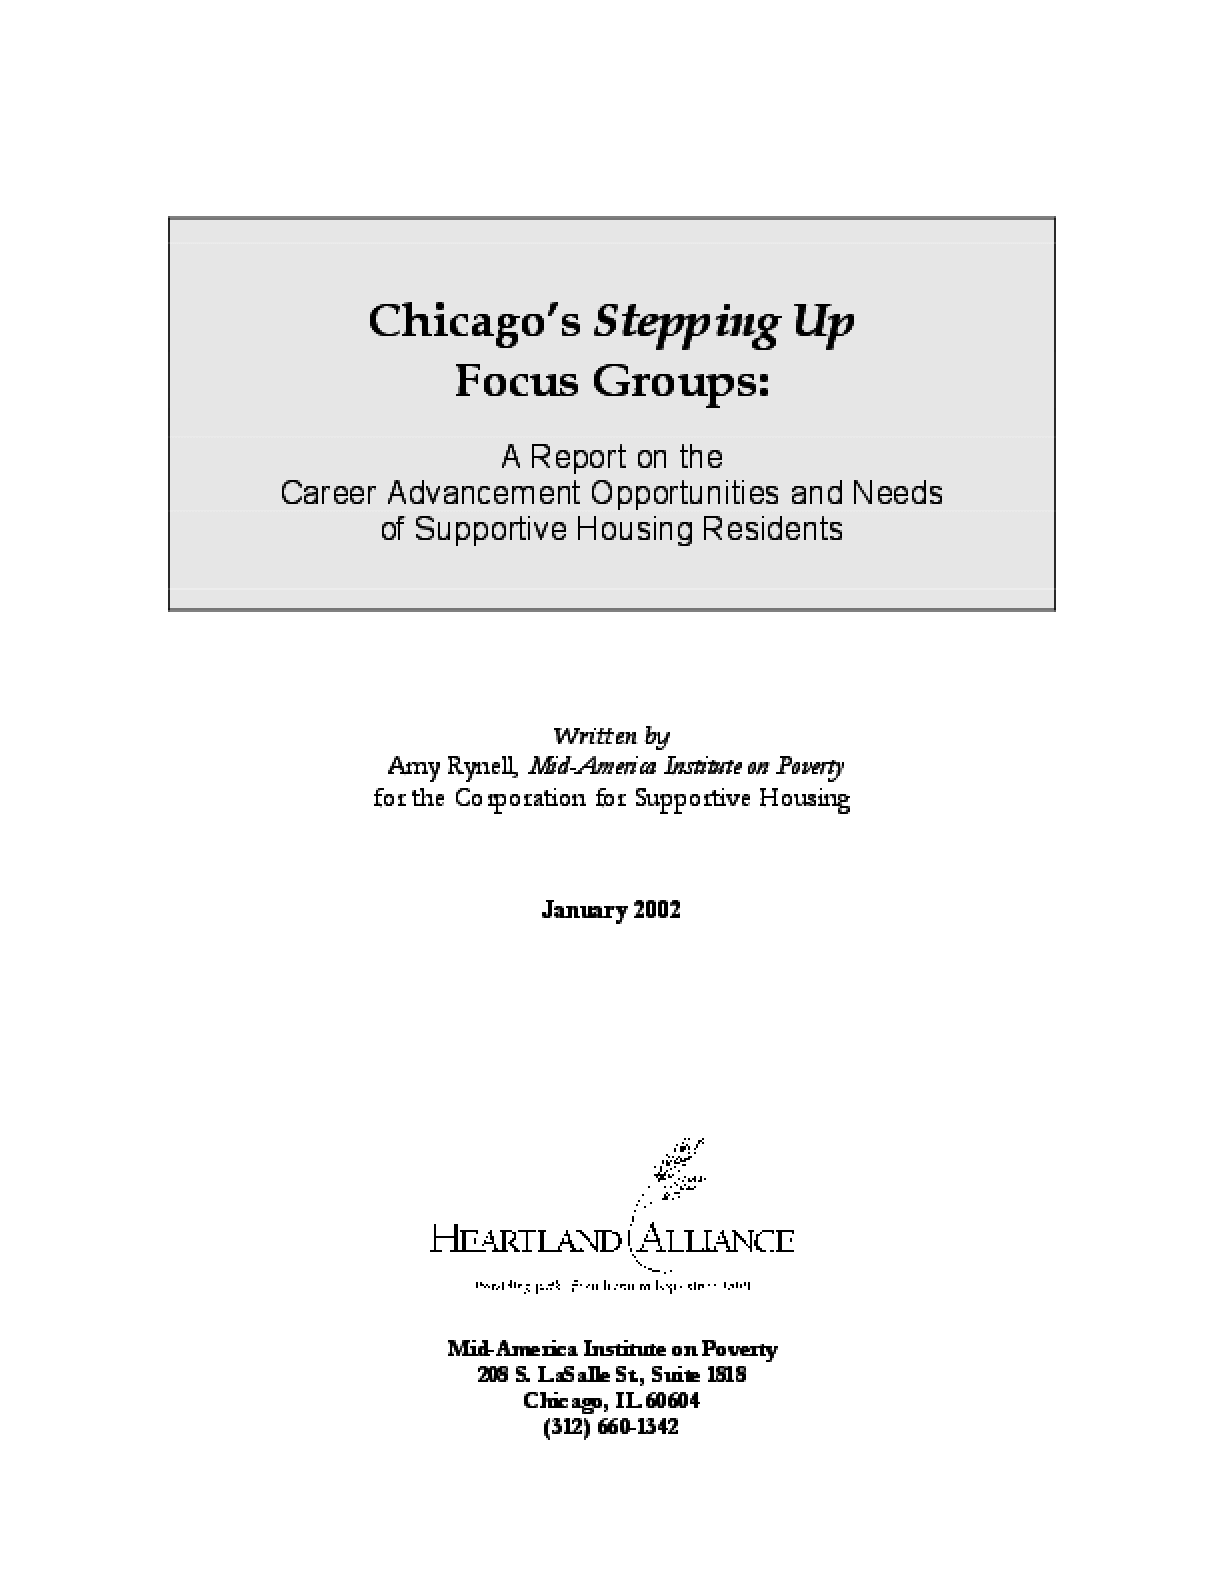 Chicago's Stepping Up Focus Groups: A Report on the Career Advancement Opportunities and Needs of Supportive Housing Residents